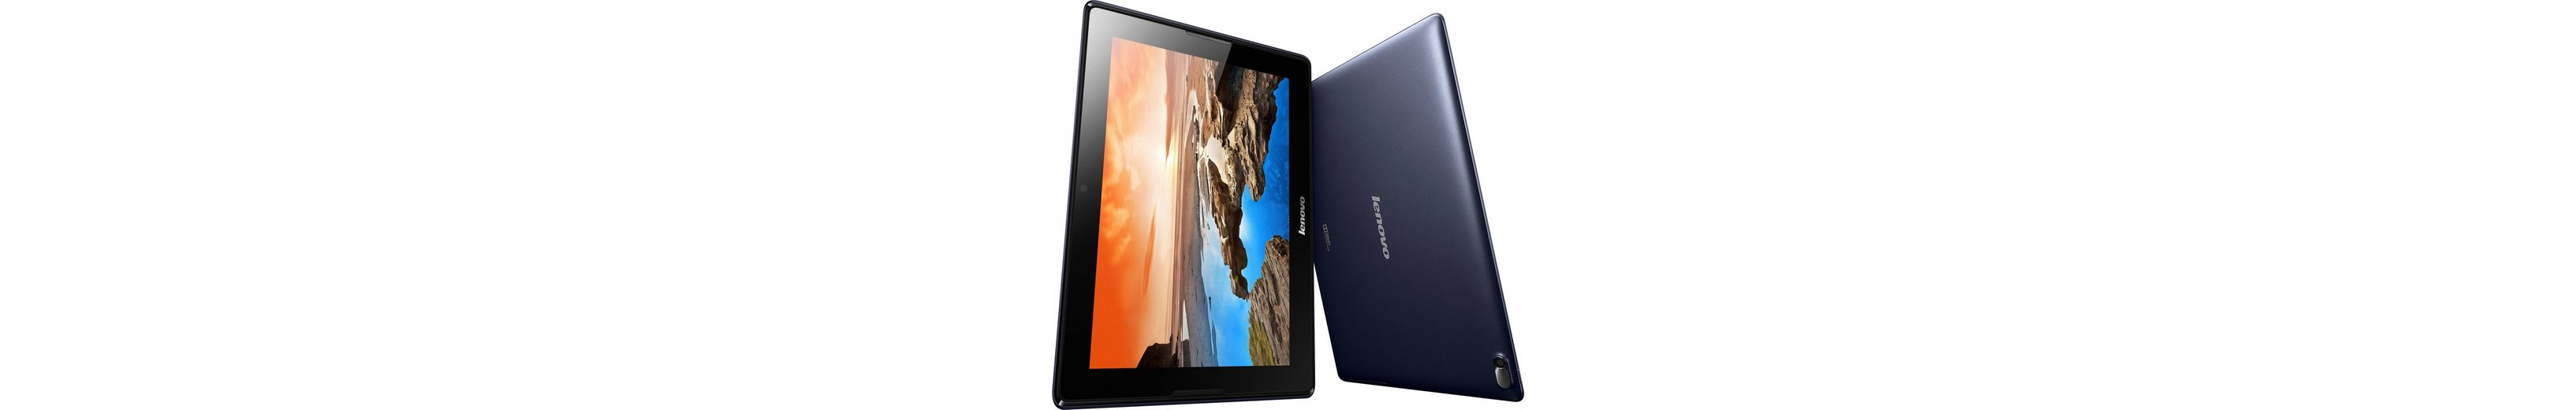 Lenovo Tab 2 A10-70F Tablet-PC, Android 4.4 (KitKat), Quad-Core, 25,7 cm (10,1 Zoll), 2048 MBLPDDR3